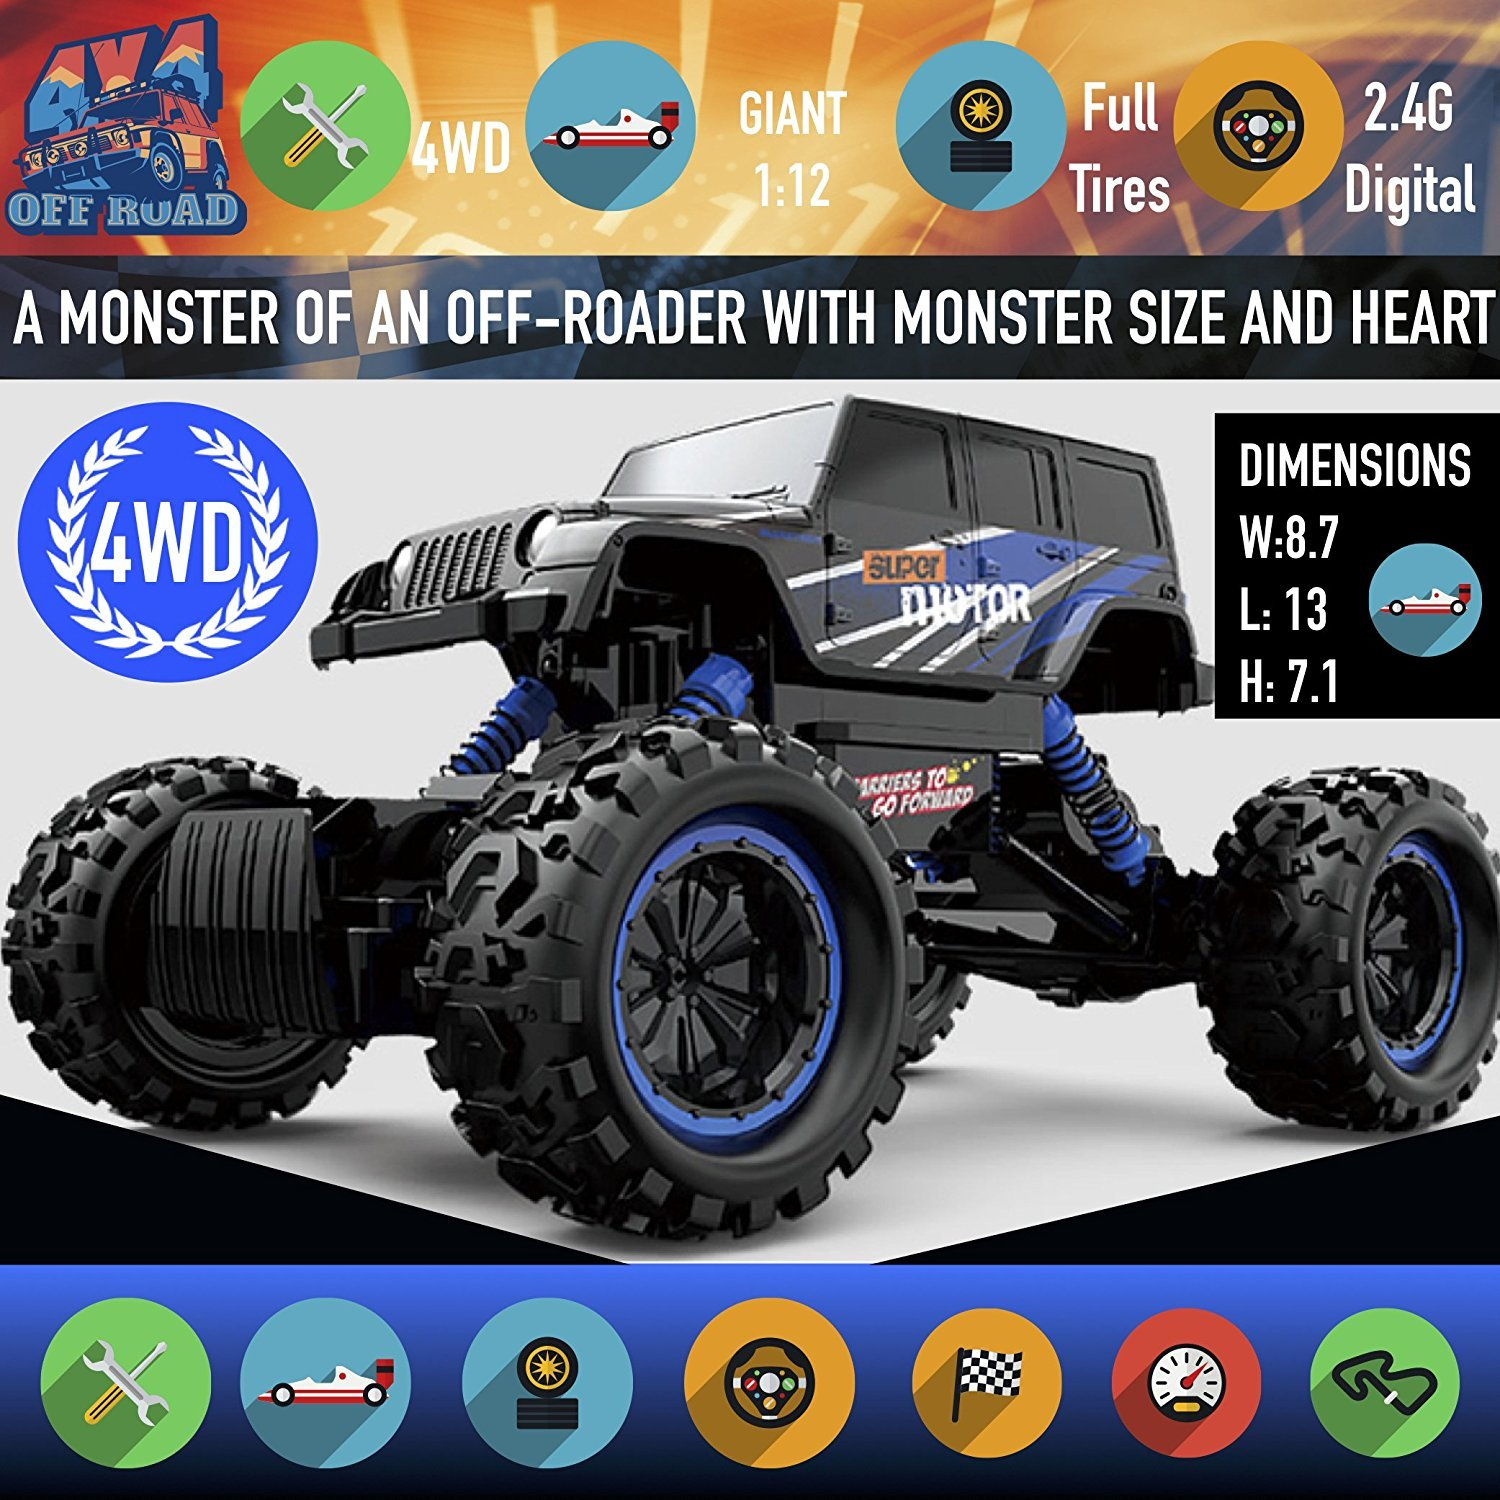 Remote Control Monster Truck with Full-Time 4-Wheel Drive